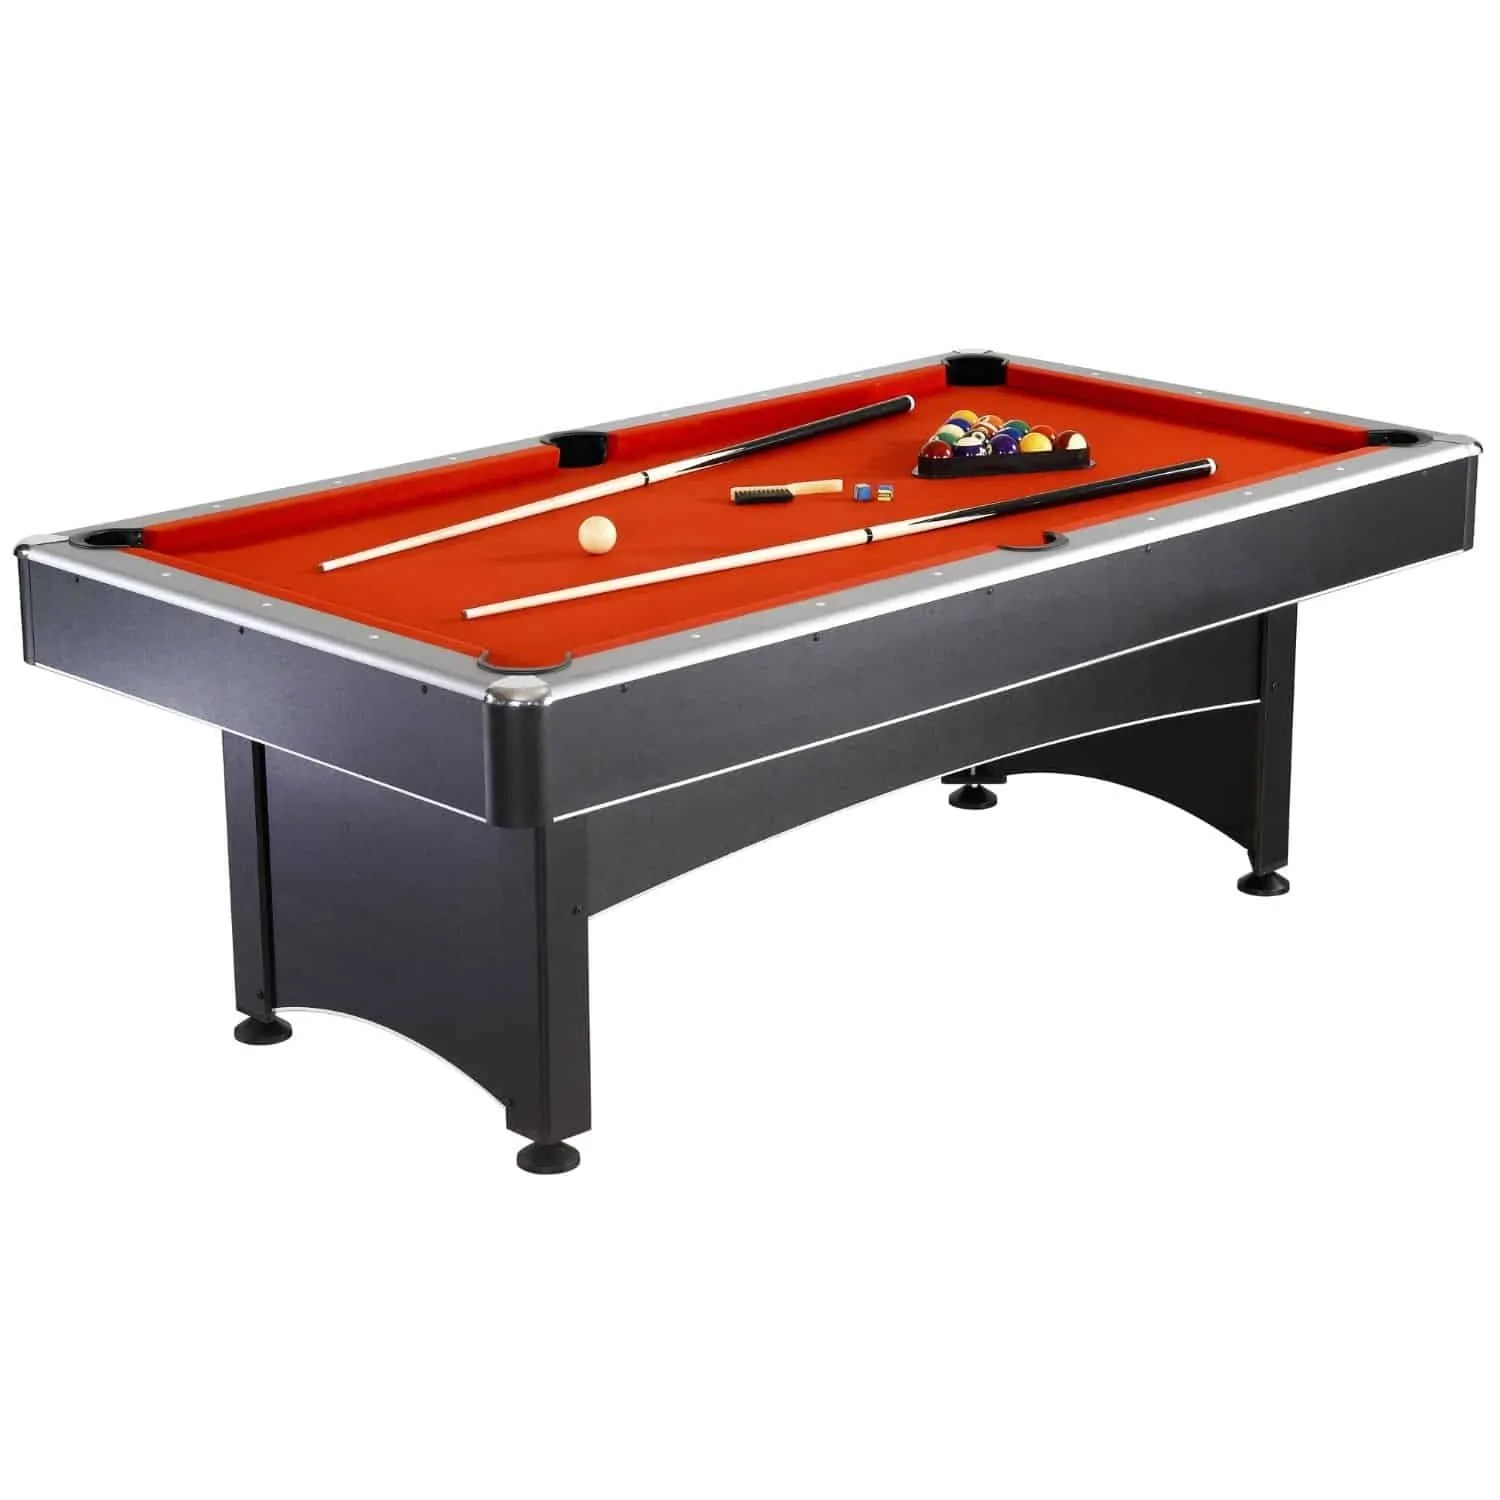 Hathaway Maverick Table Tennis And Pool Table Review 2017